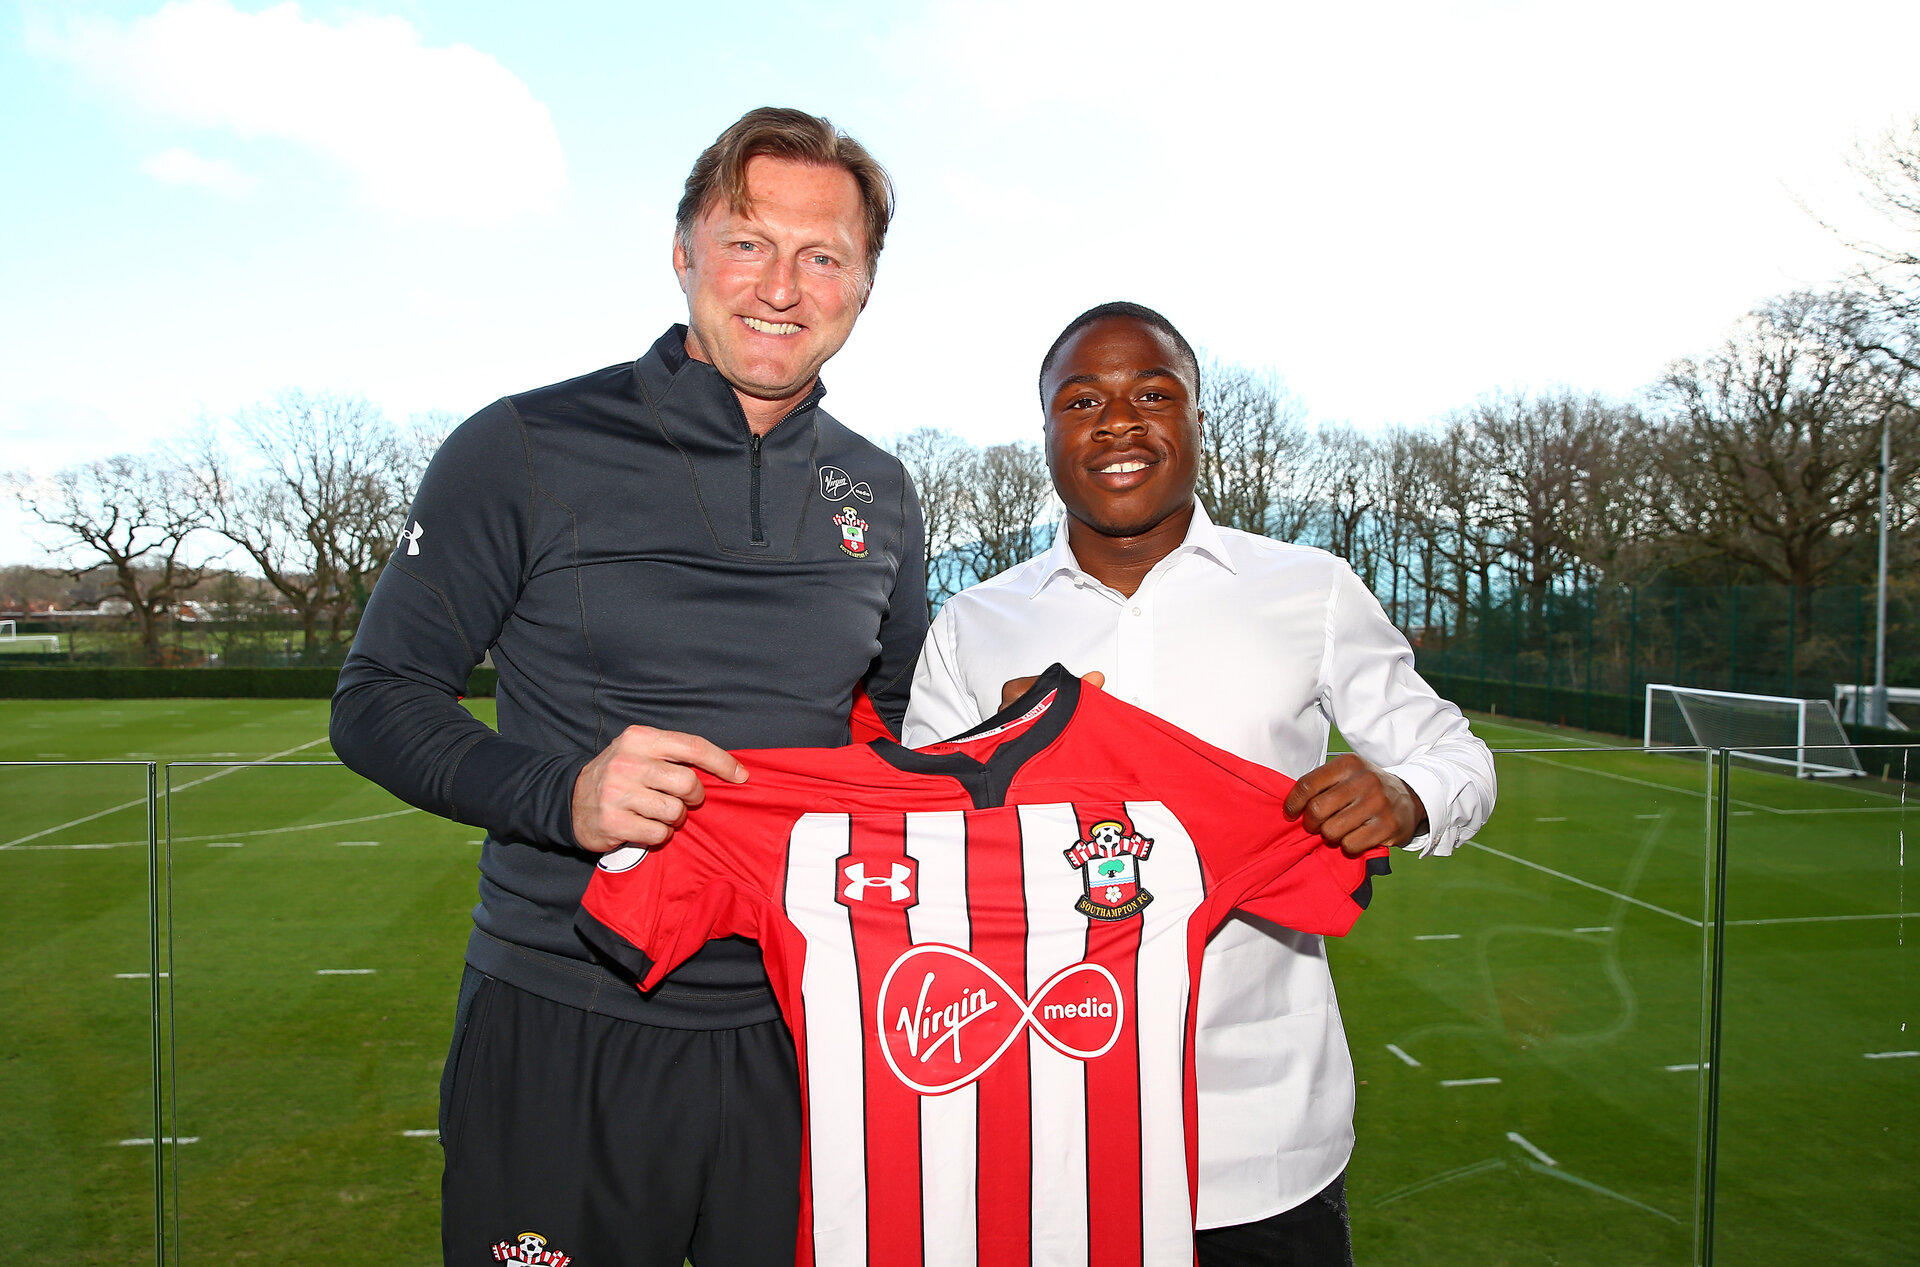 SOUTHAMPTON, ENGLAND - FEBRUARY 20: Michael Obafemi signs a new three and a half year contract with Southampton FC, pictured with manager Ralph Hasenhuttl(L) at the Staplewood Campus, on February 20, 2019 in Southampton, England. (Photo by Matt Watson/Southampton FC via Getty Images)